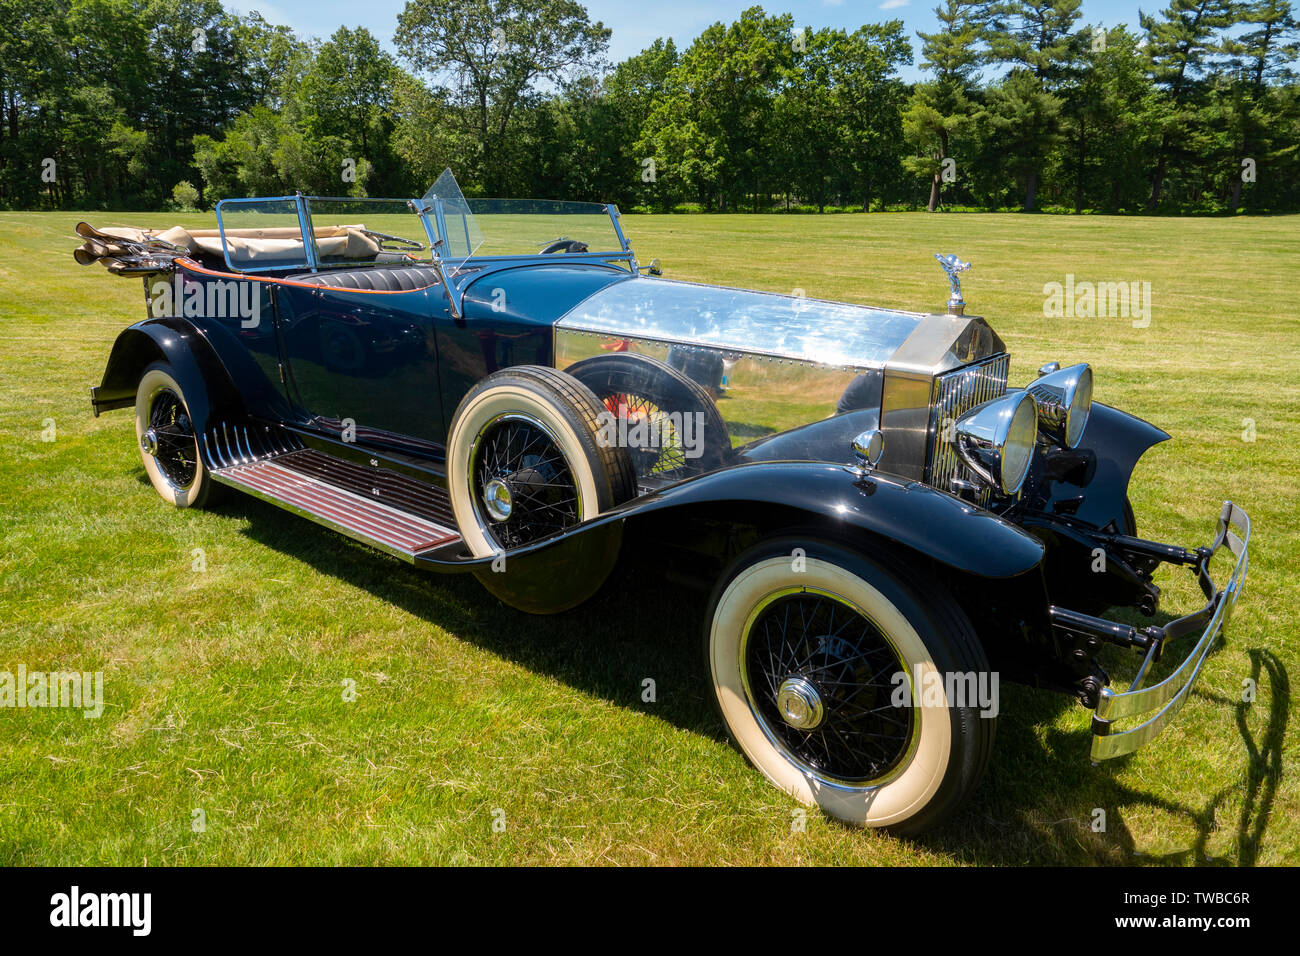 vintage rolls royce convertible high resolution stock photography and images alamy https www alamy com rolls royce 1927 phantom 1 phaeton classic vintage car historic luxury automobile image256562623 html